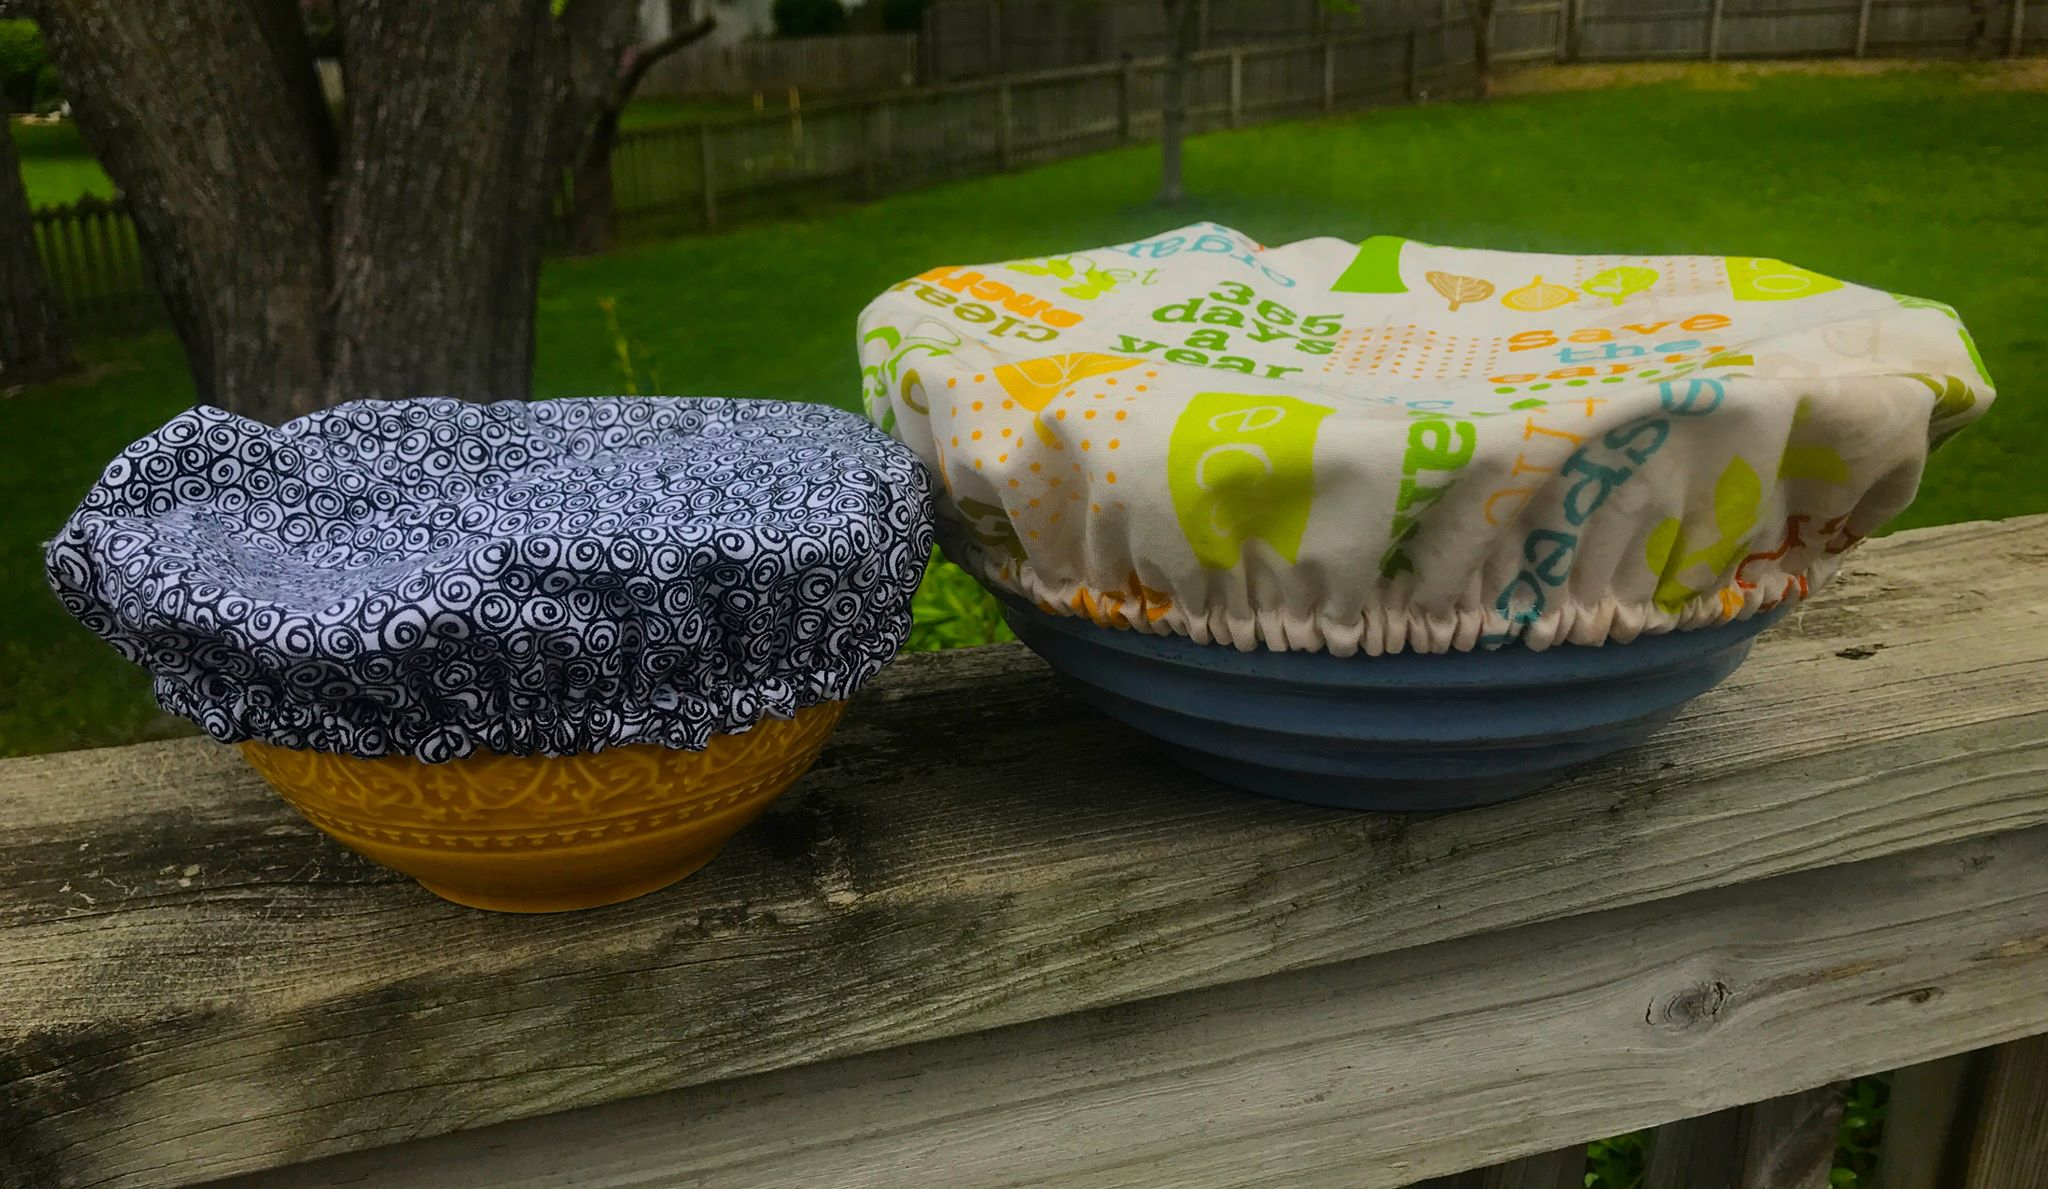 Cover those dishes without plastic!